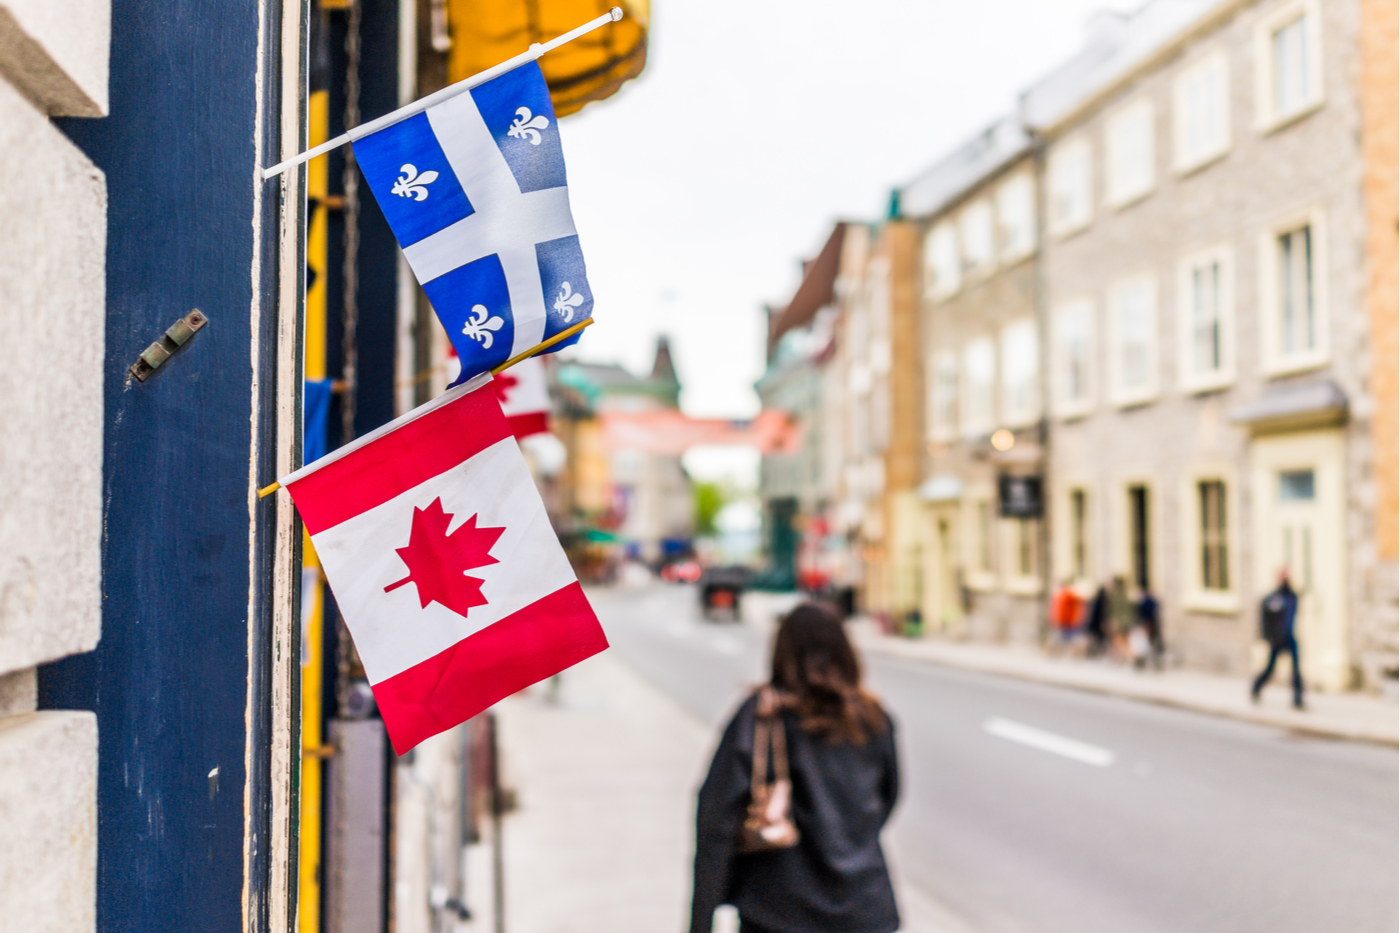 Quebec Needs More Immigrants, The local economy and job market are struggling!